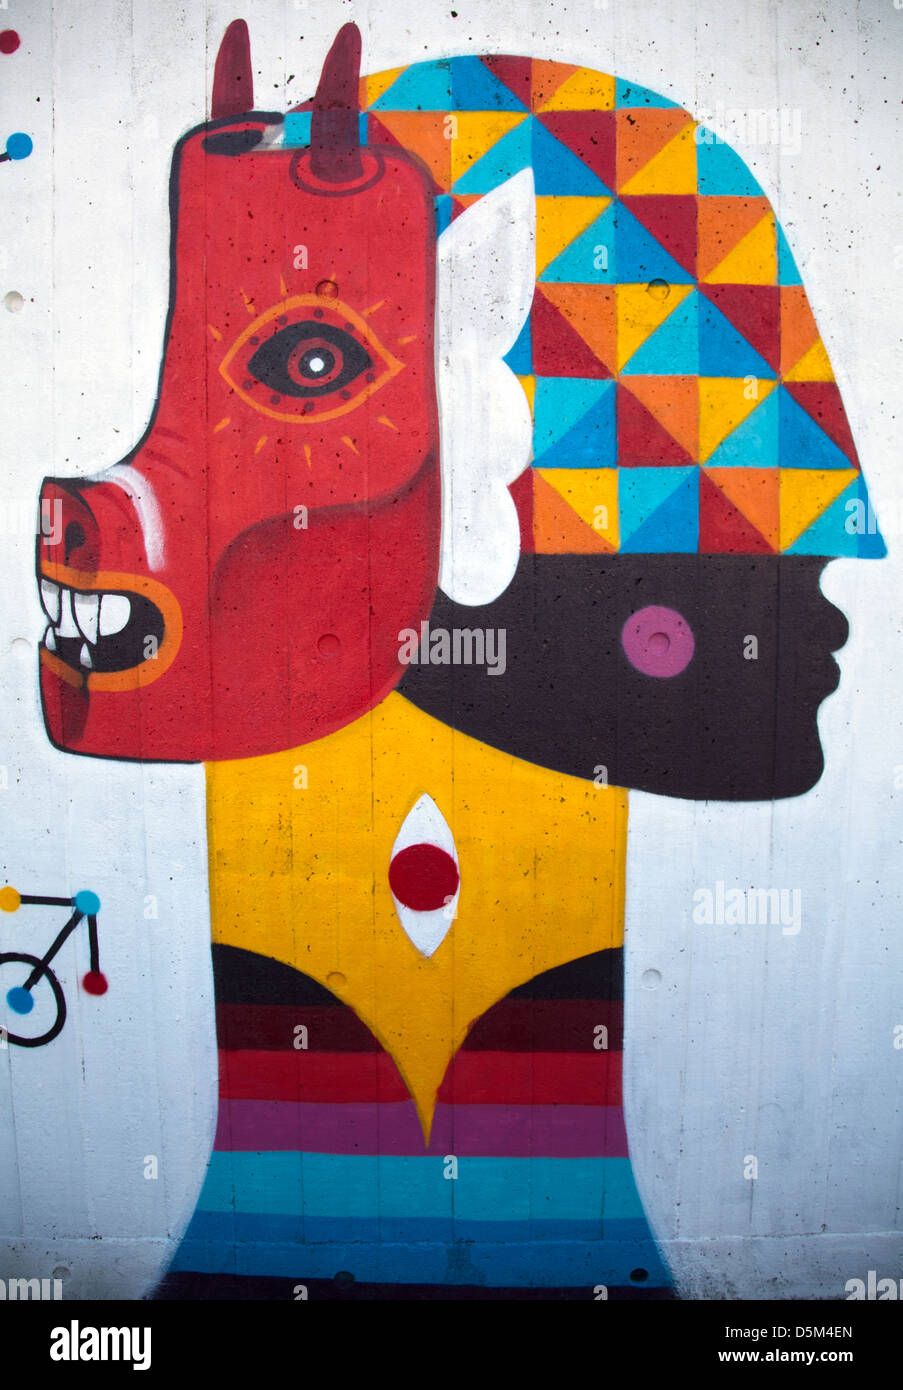 Mural paintings on South bank wall - London, UK - Stock Image